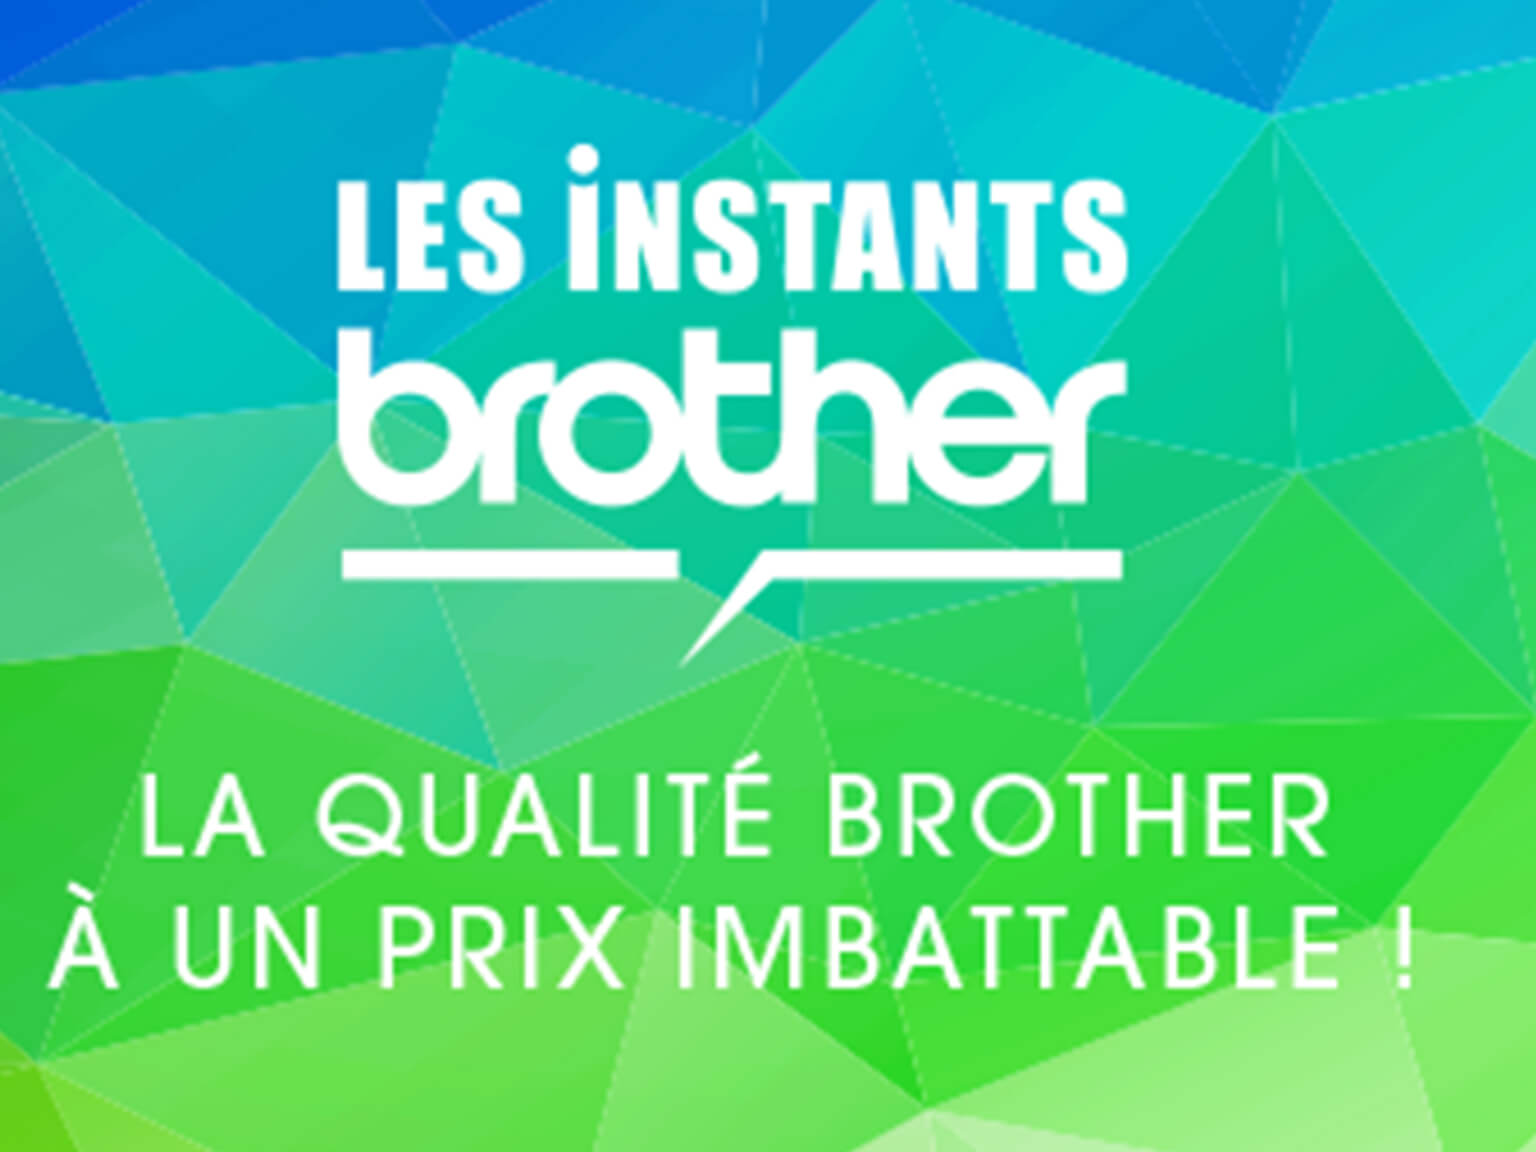 Les instants Brother Promotion